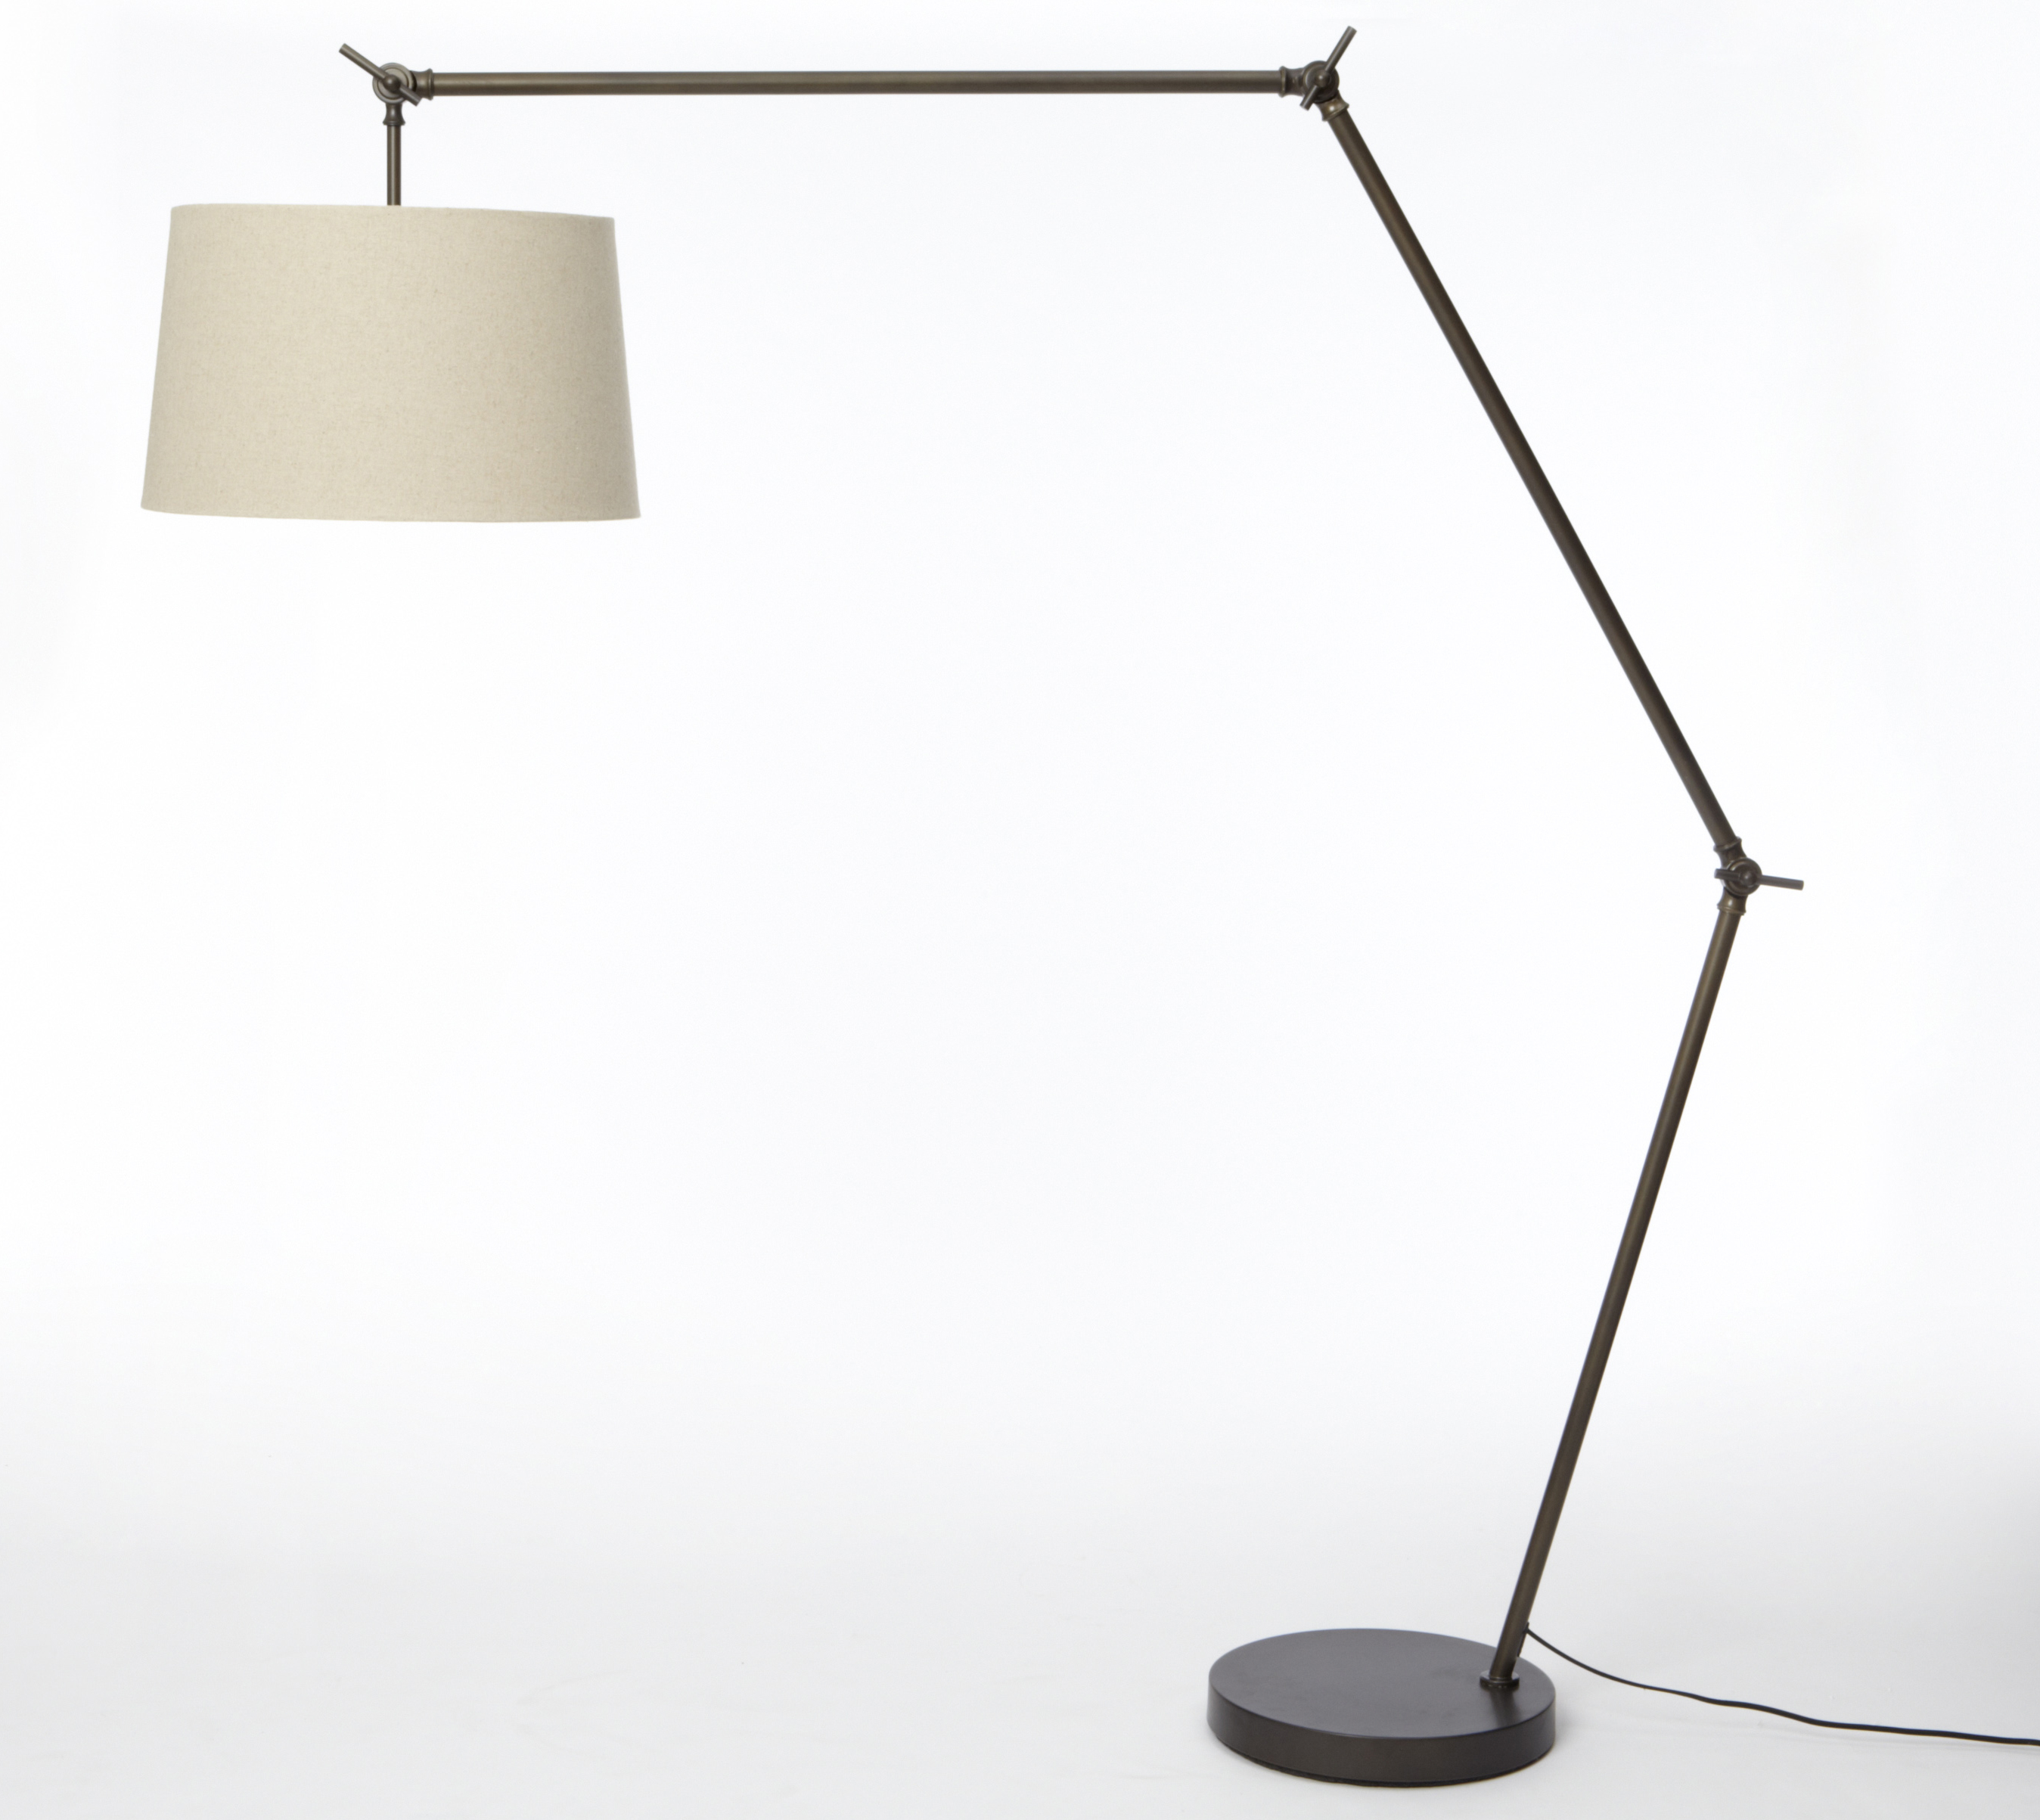 SPICE UP YOUR SPACE WITH West elm floor lamps